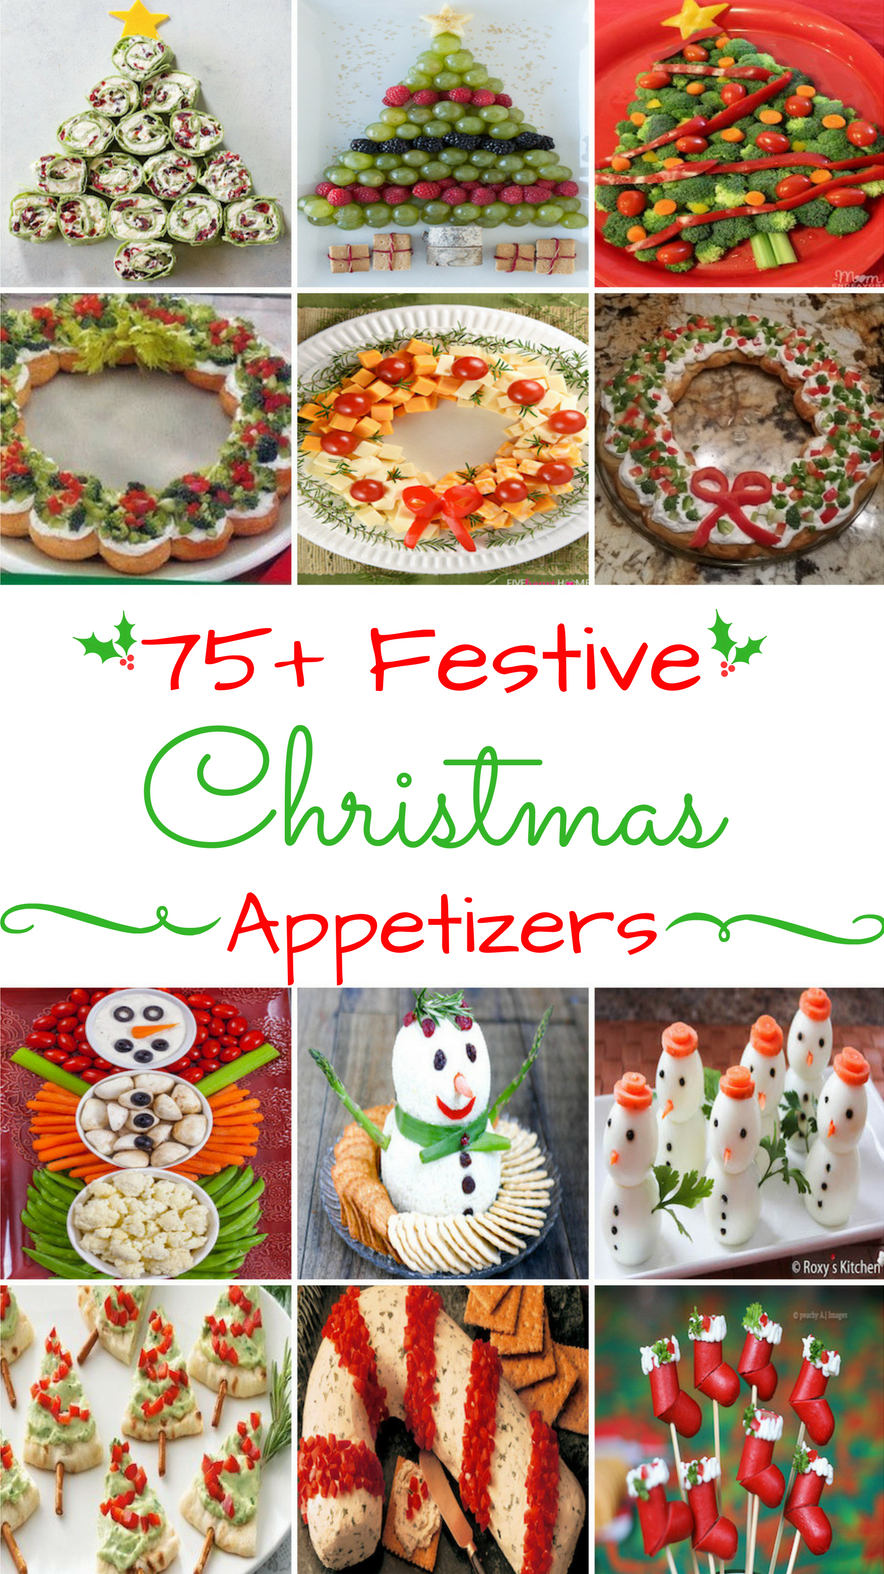 120 Festive Christmas Appetizers Christmas Appetizers Christmas Snacks Christmas Party Food